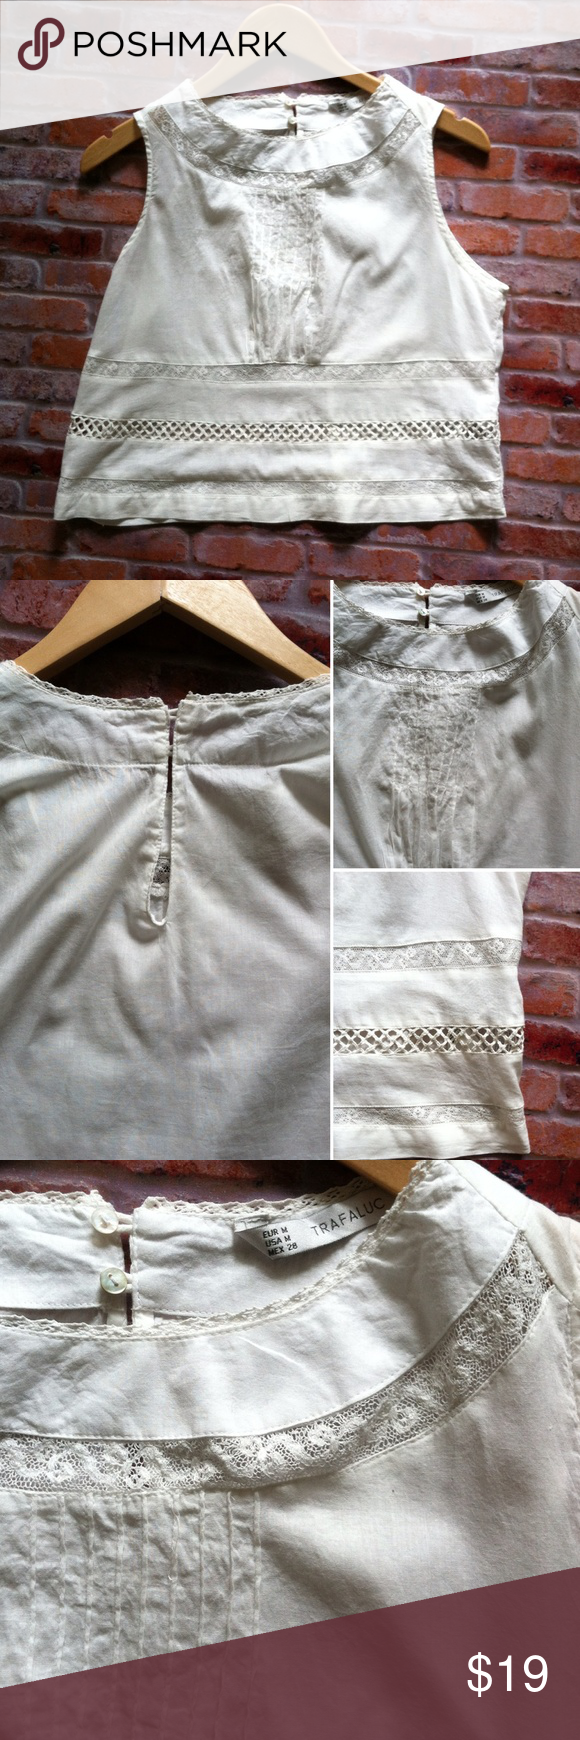 """Zara Trafaluc boho white cropped top 100% lightweight cotton top. Lace border around the neck and cutout lace stripes at the hem. Lightly pleated bust. Key at nape with two buttons. Perfect topper for a maxi skirt or throw on with cutoffs and sandals and head to the beach. 19""""L. 19"""" across bust laying flat. Size Medium. Zara Tops"""